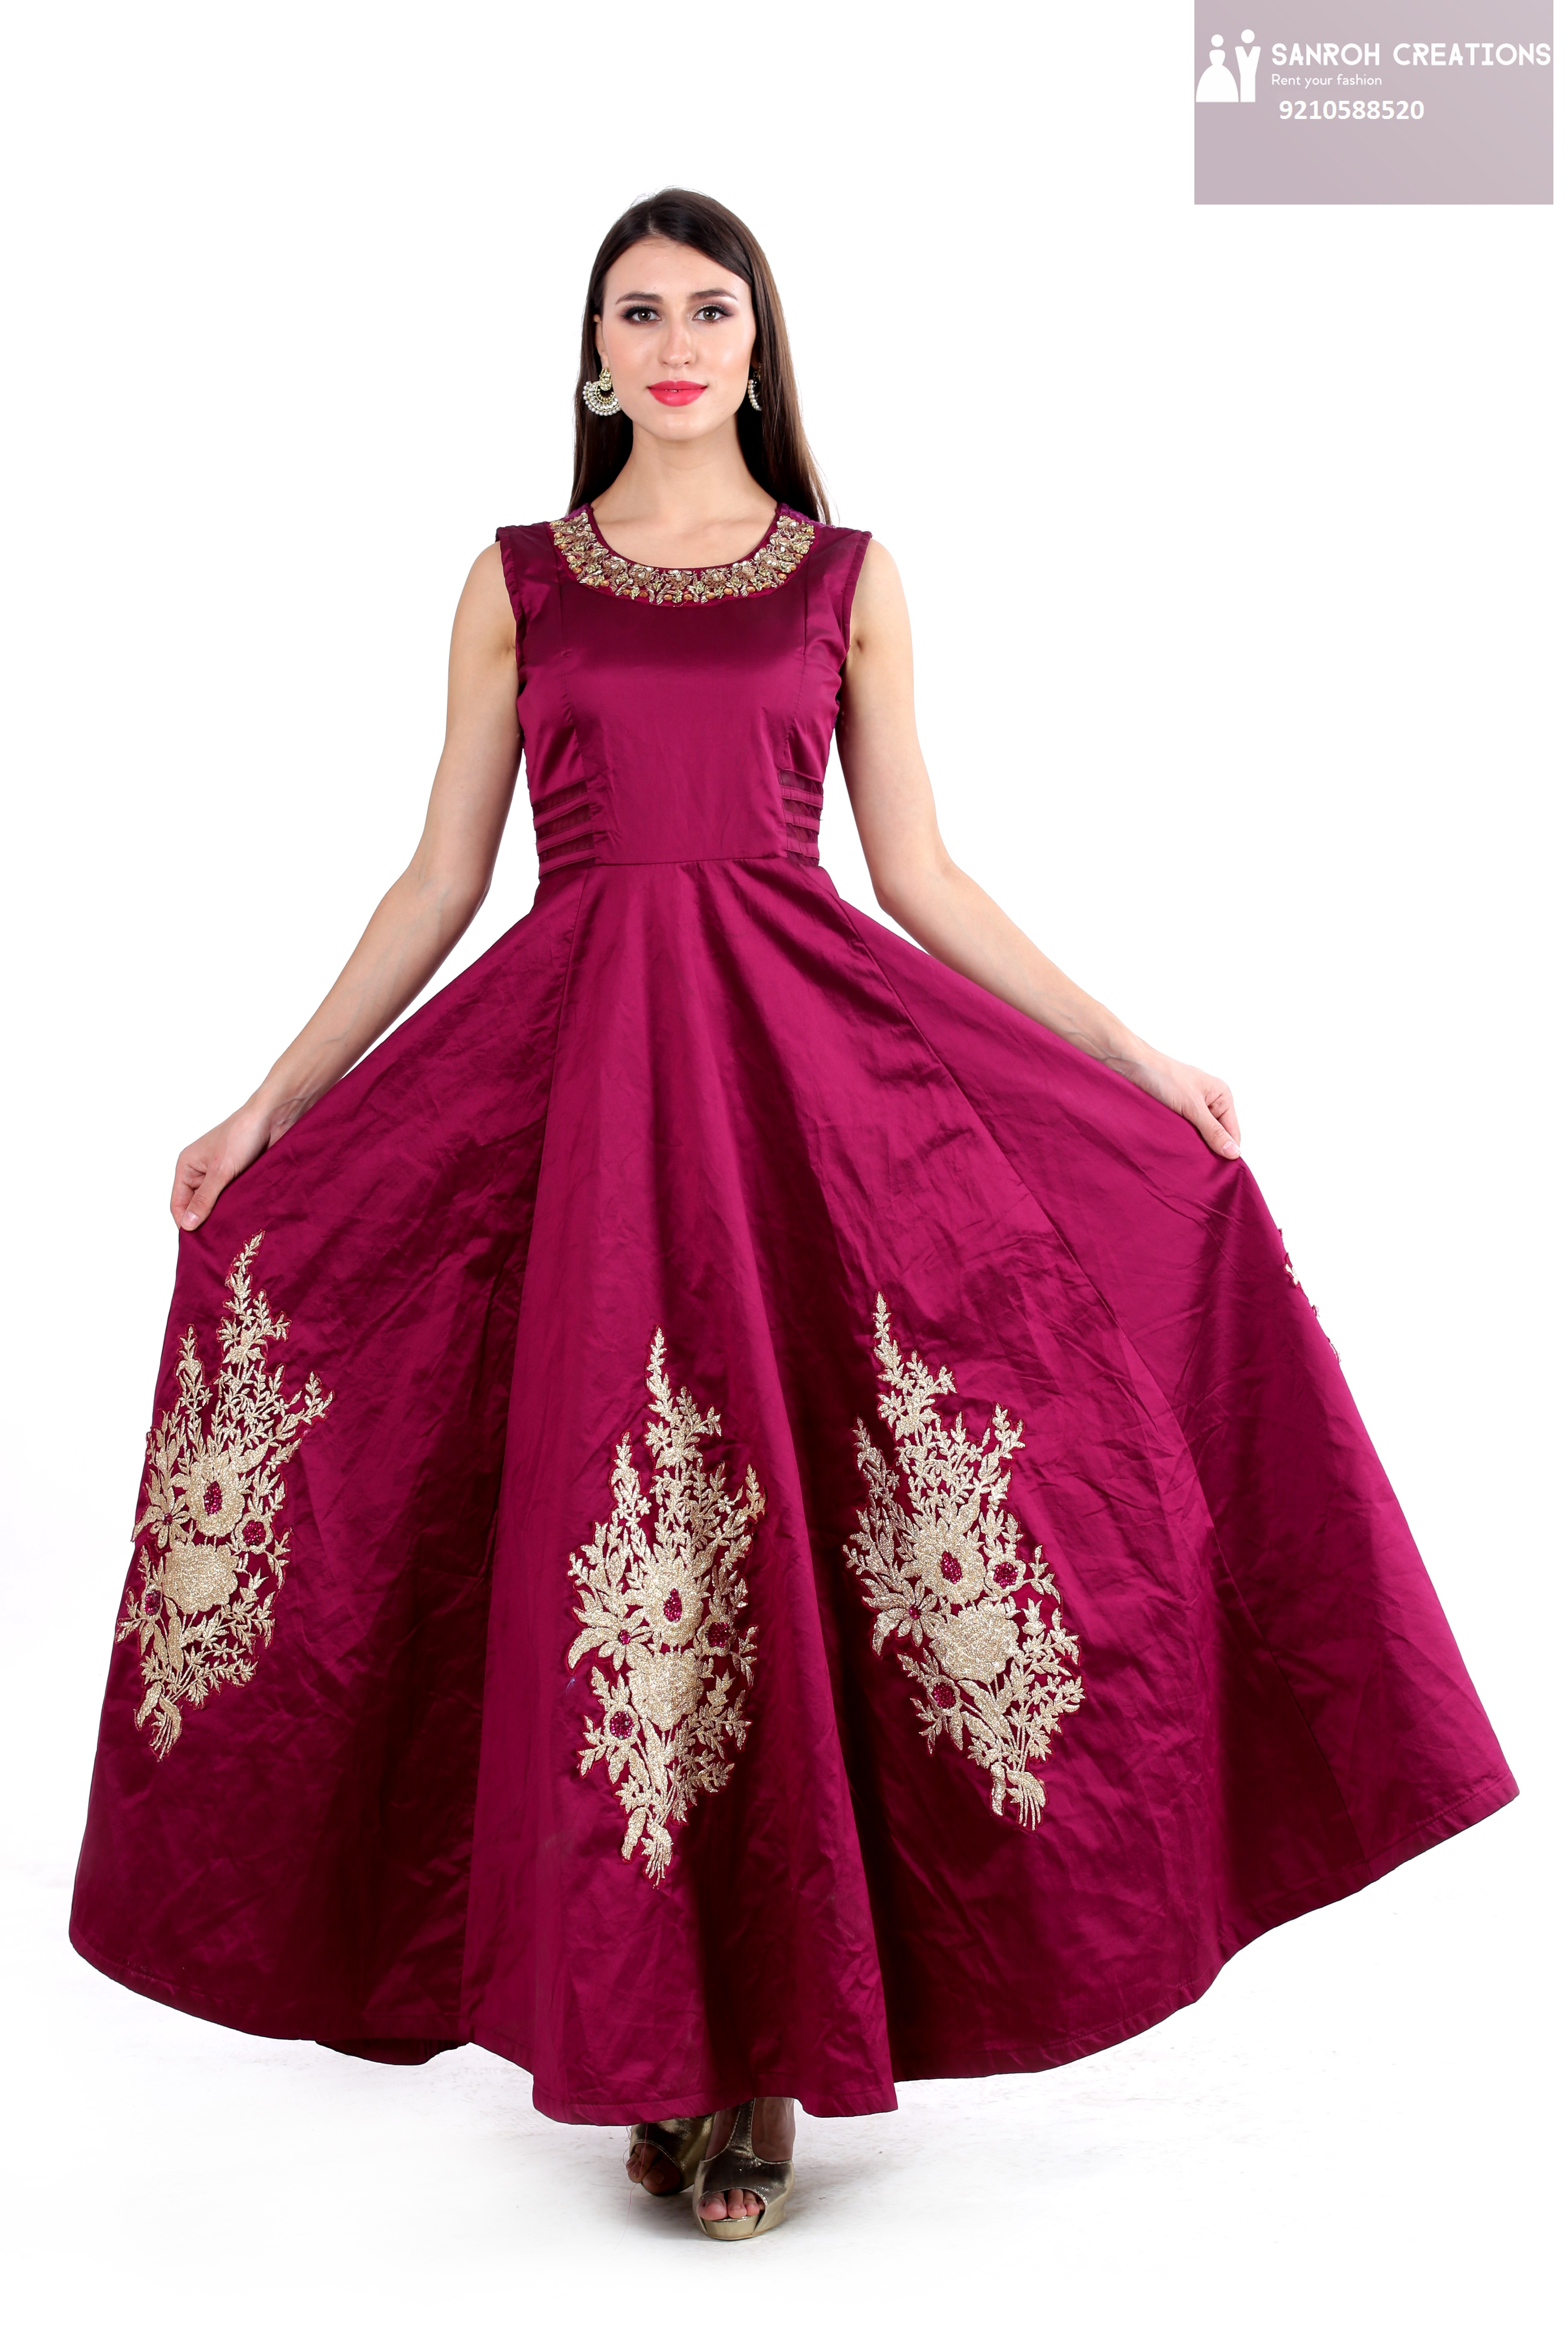 party wear dresses for girl on rent in Gurgaon sector 15